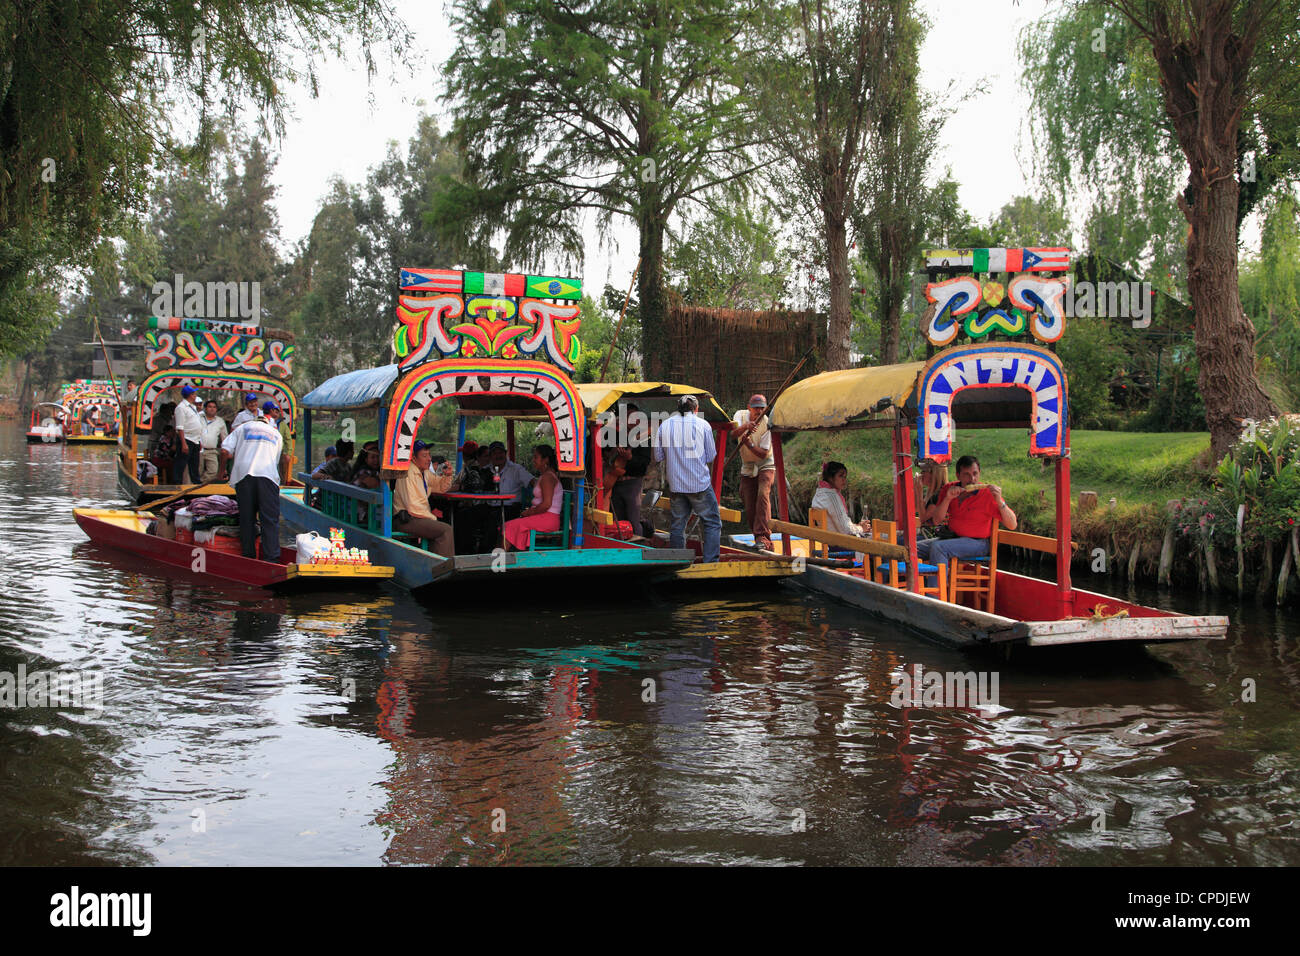 Brightly Painted Boats Xochimilco Trajinera Floating Gardens Stock Photo Royalty Free Image